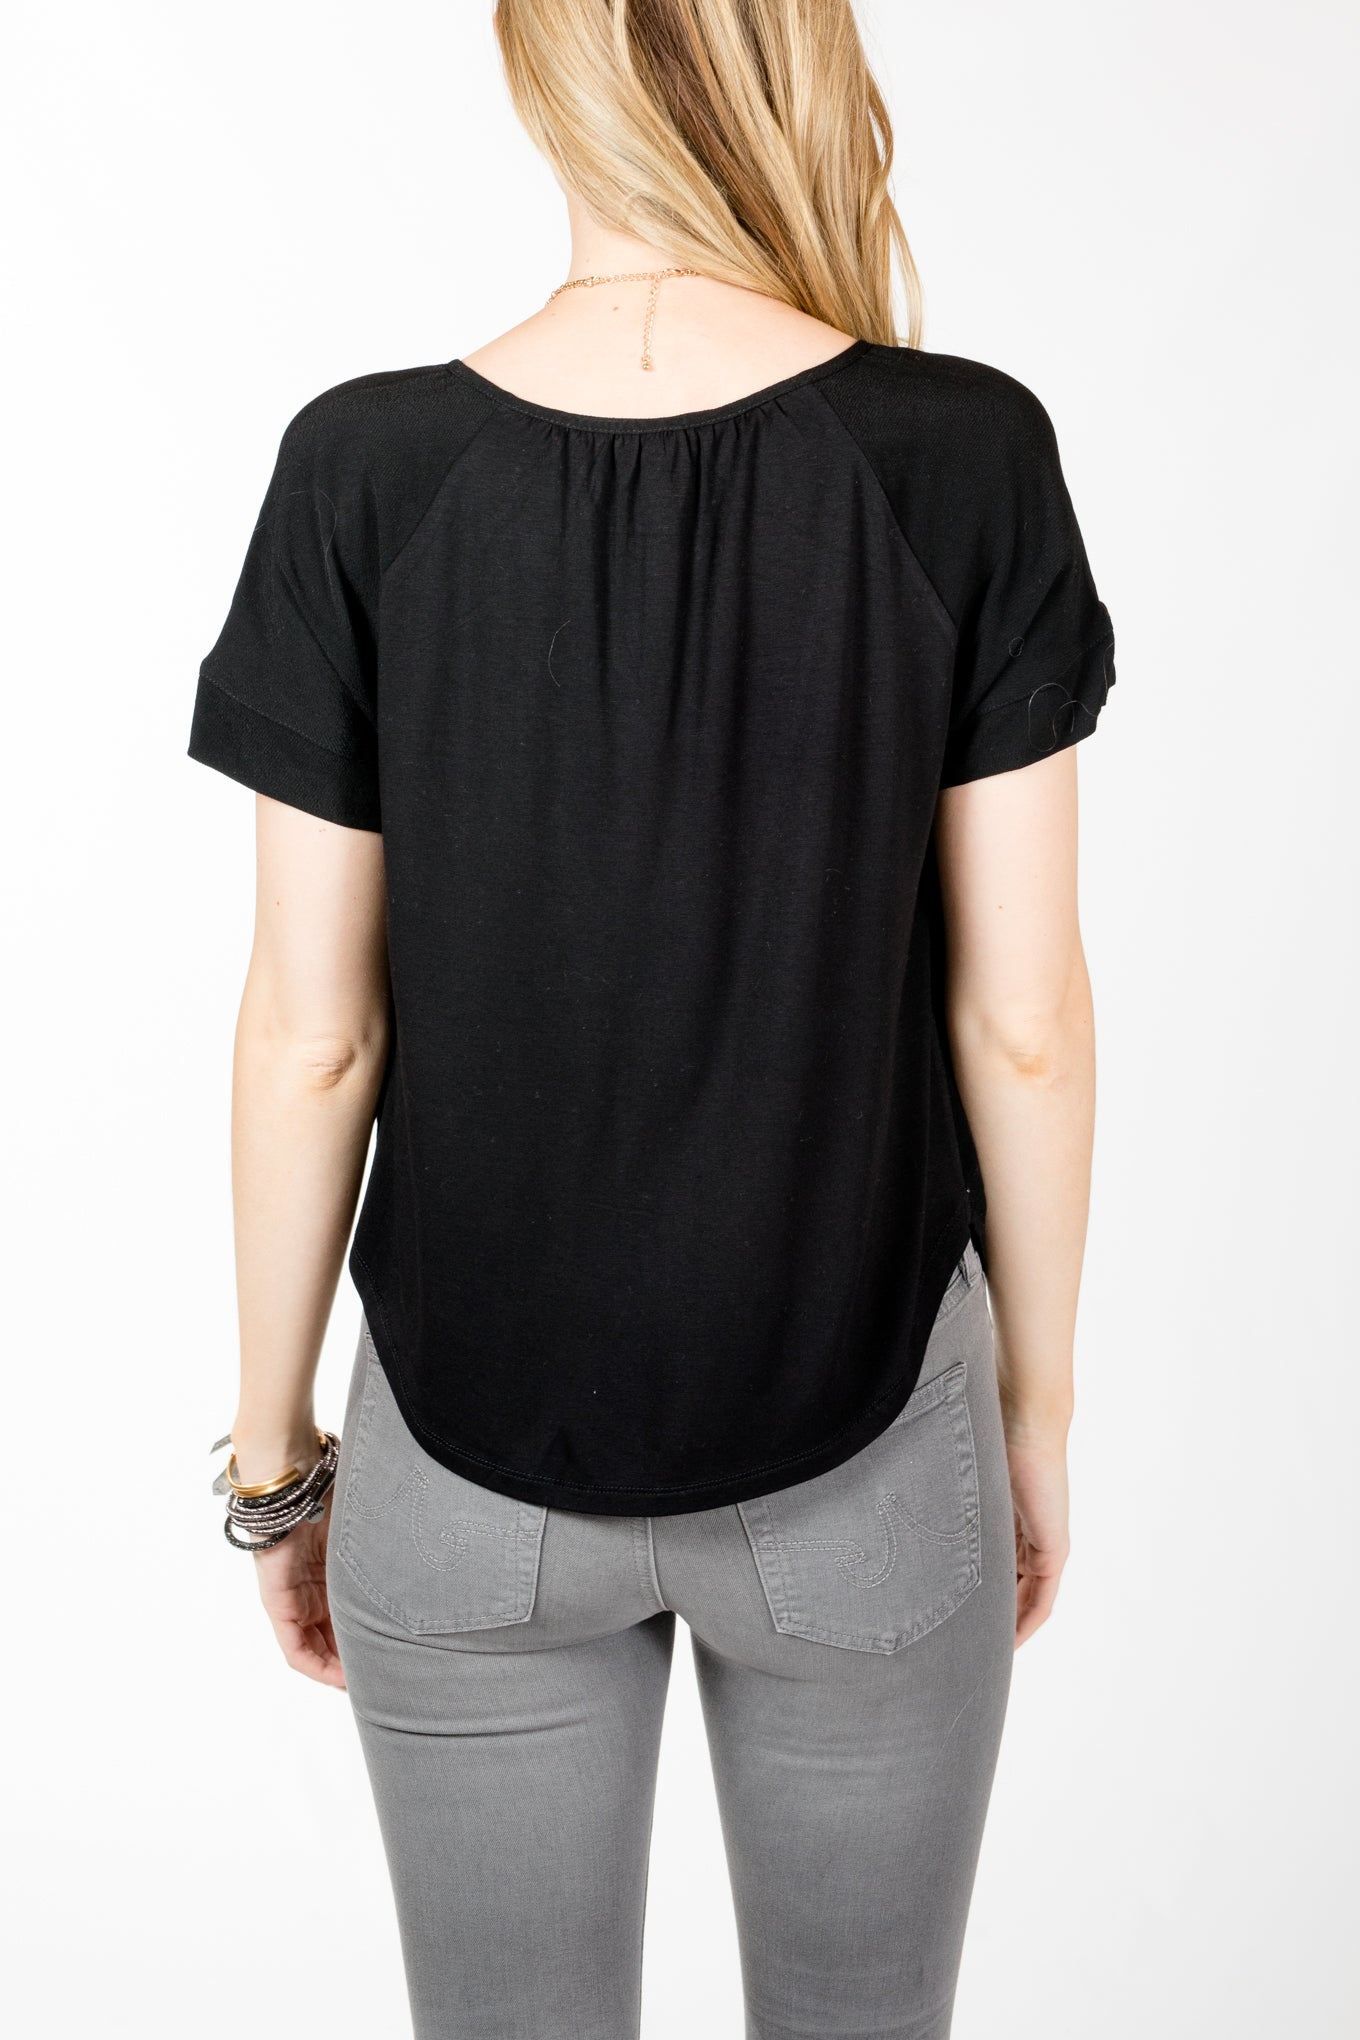 Gentle Fawn.Callie Top.Black